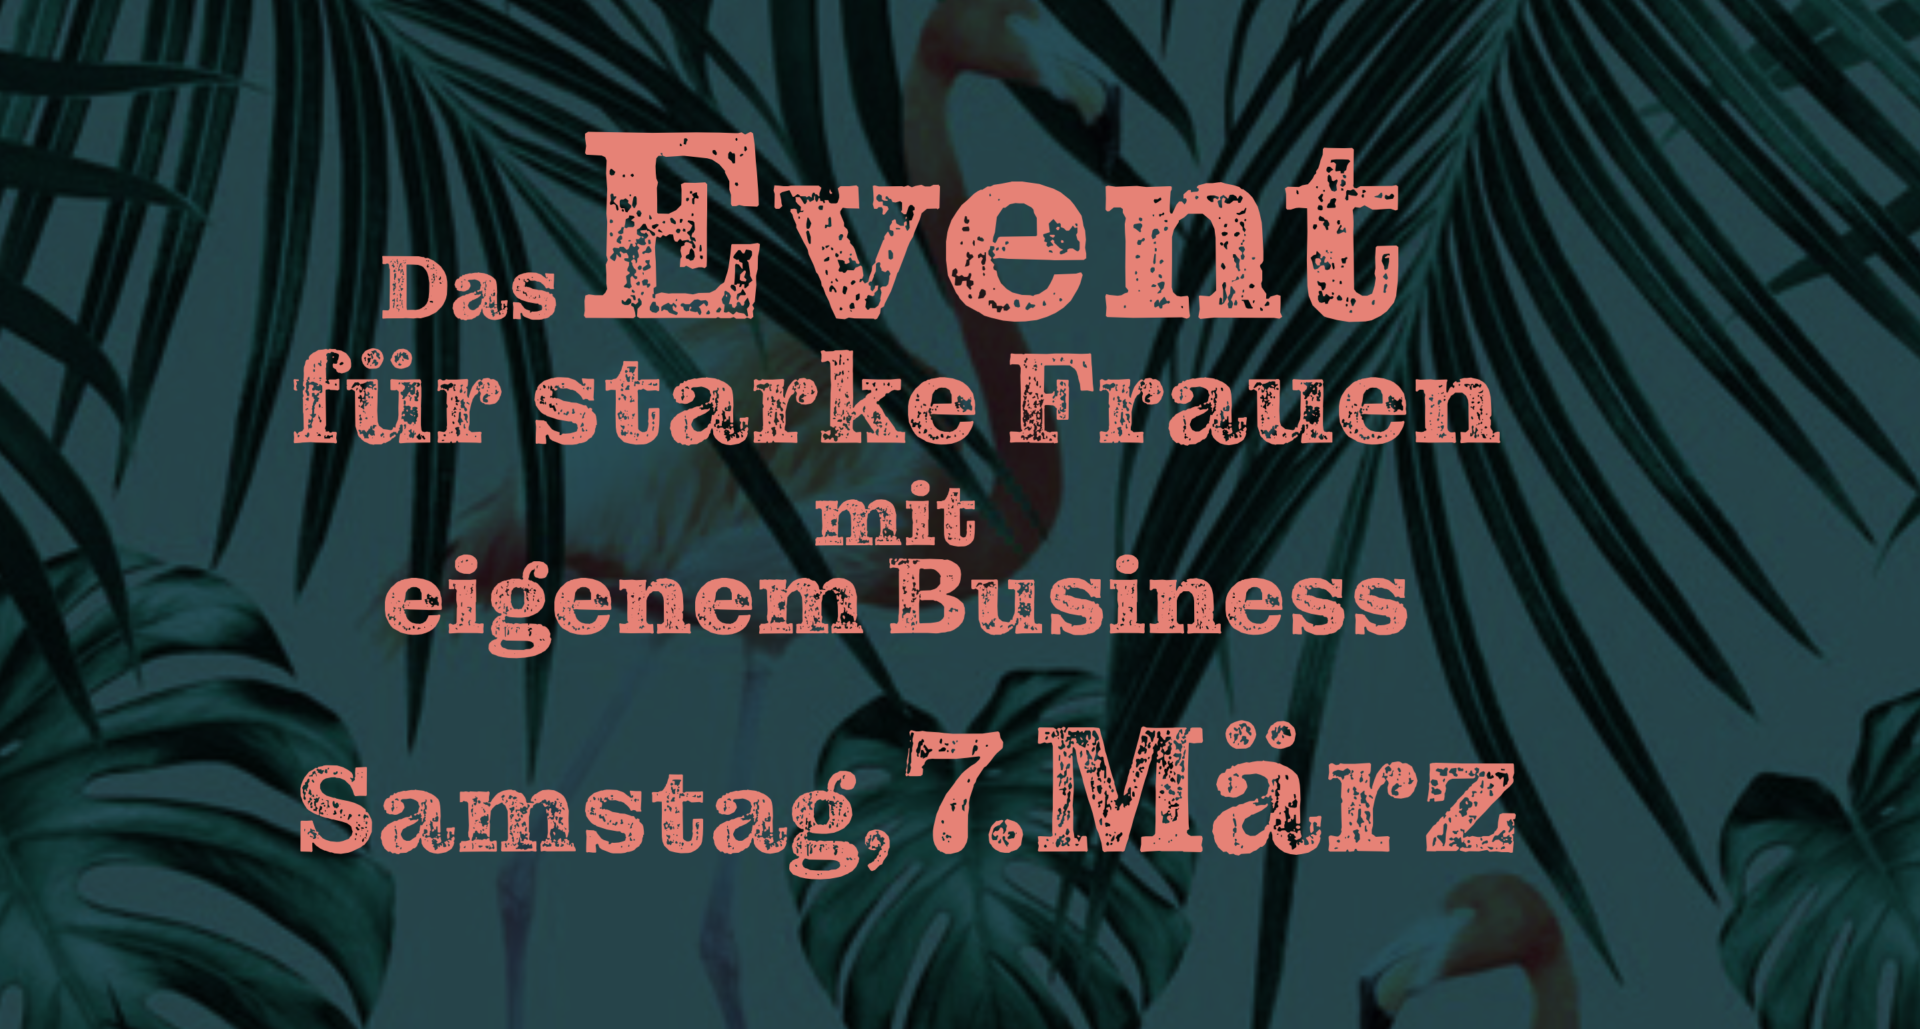 Celebrate Yourself – Das Event für starke Frauen mit eigenem Business! 4